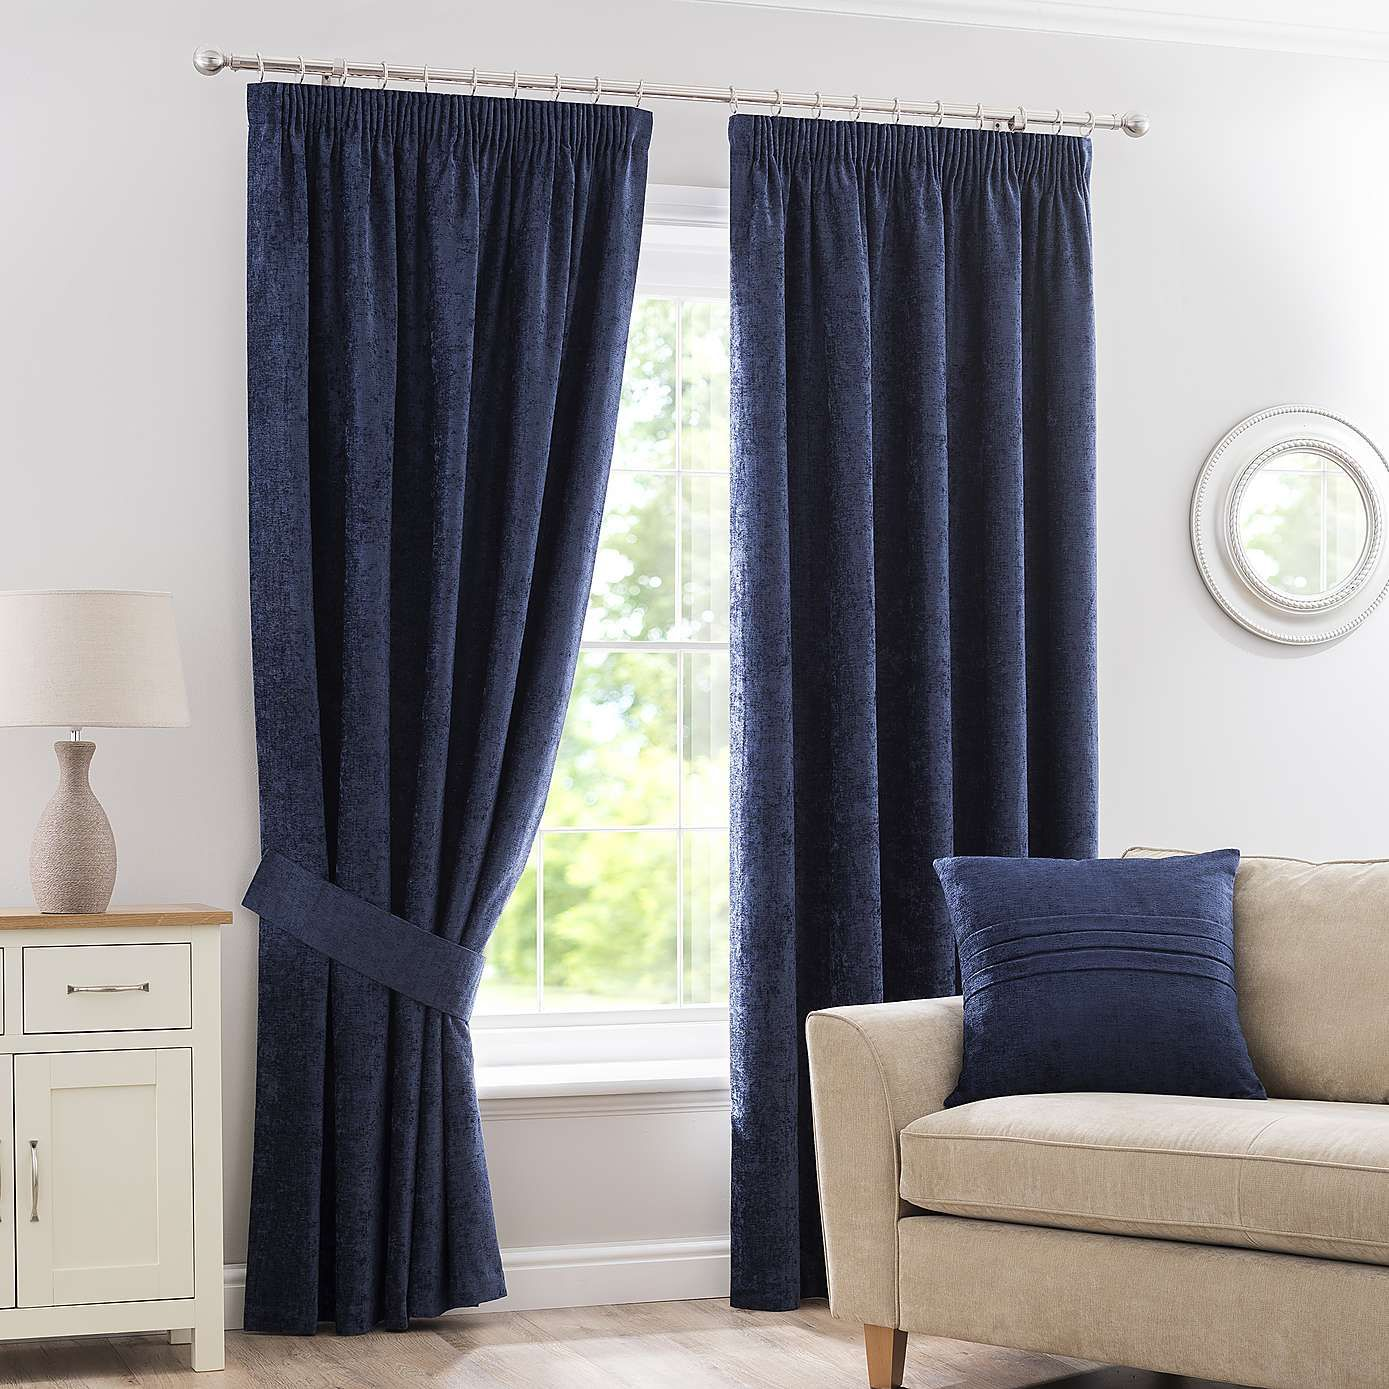 Chenille Navy Pencil Pleat Curtains In 2019